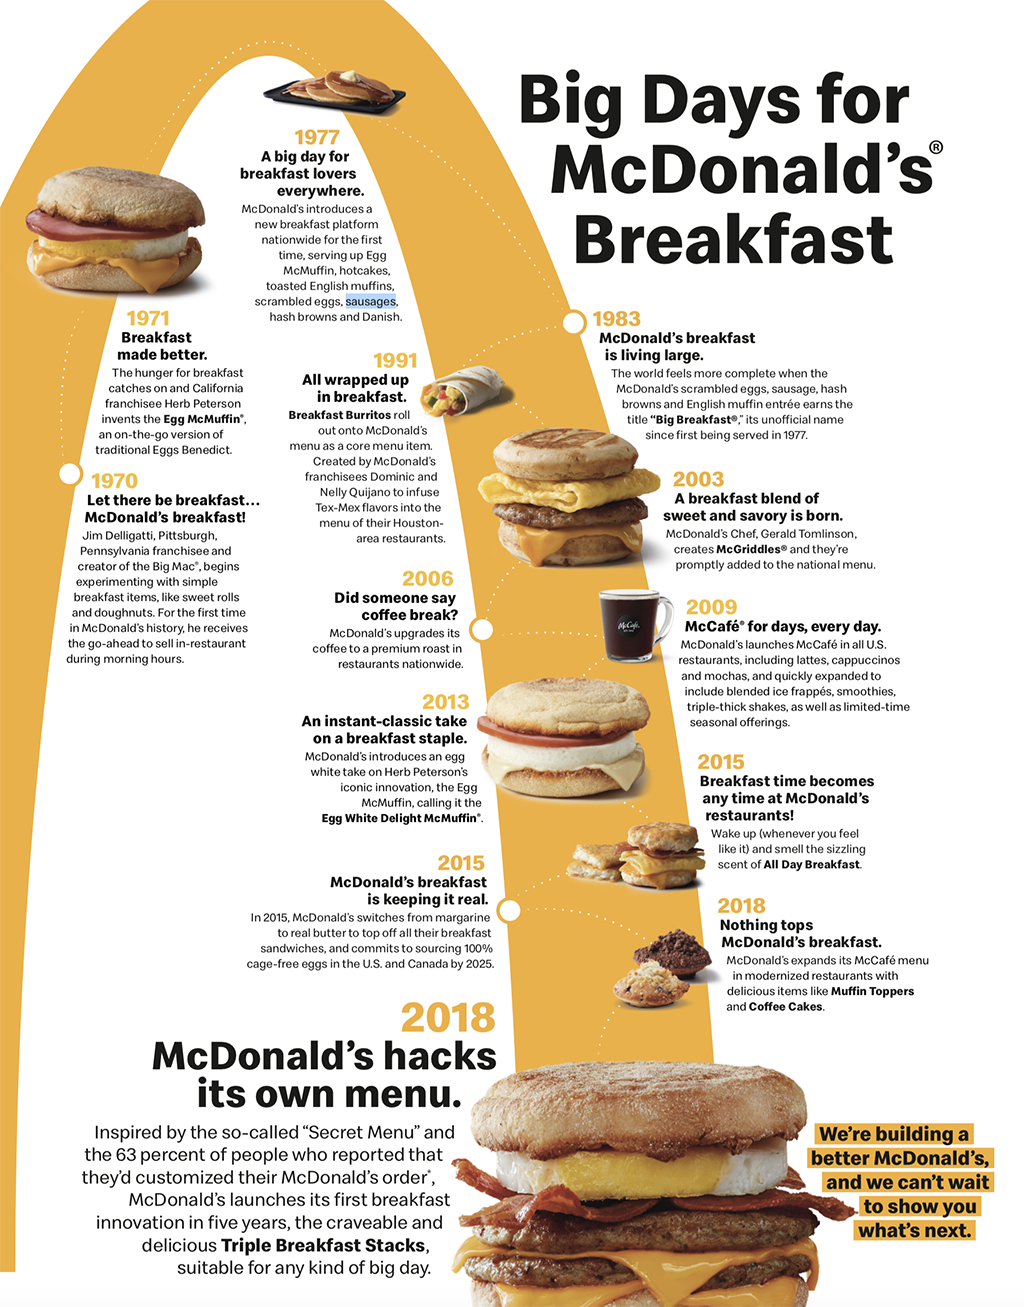 McDonald's Breakfast Innovation Infographic (McDonald's)